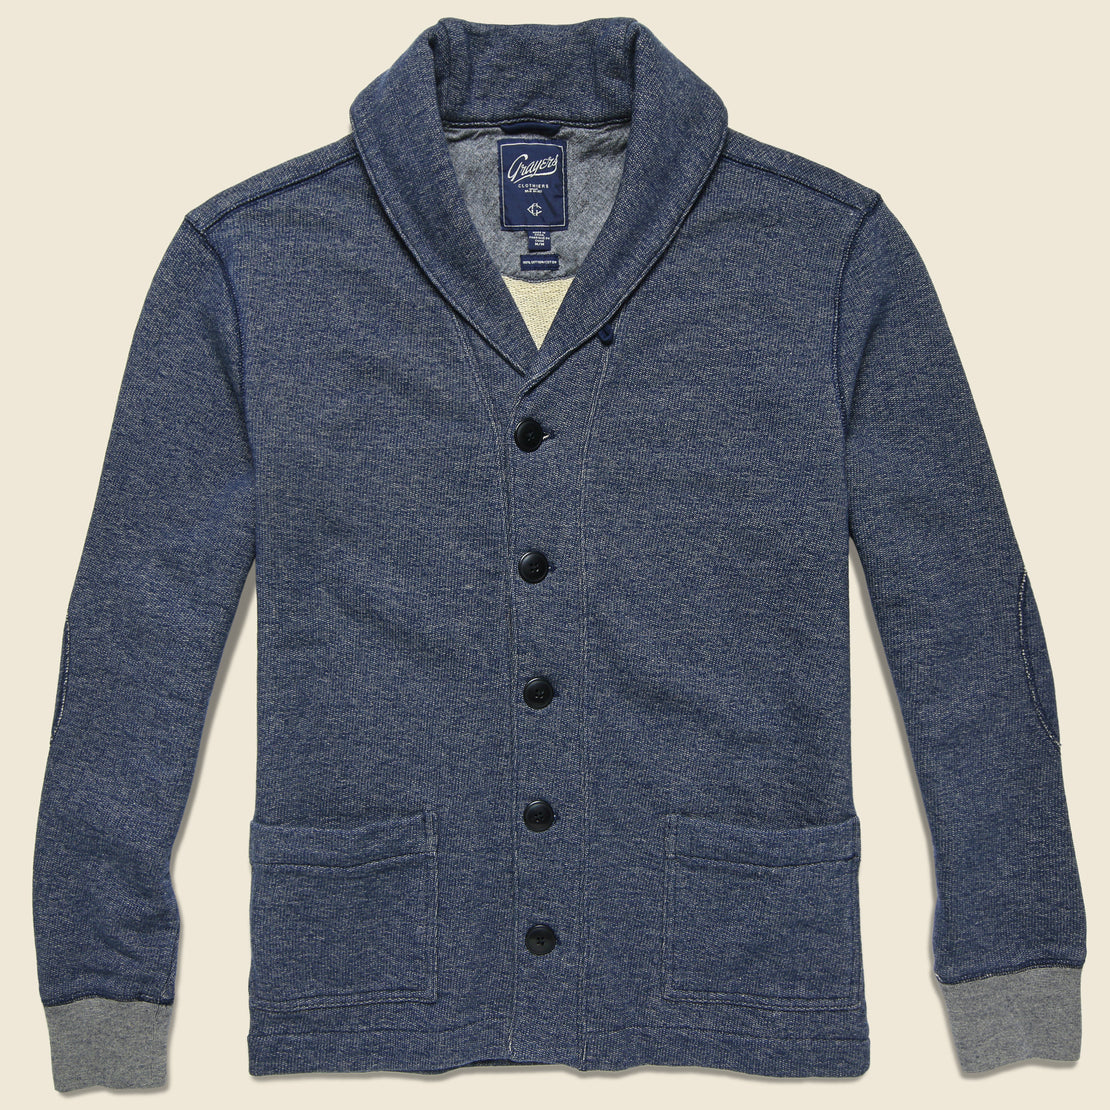 Grayers Birch Shawl Cardigan - Denim Blue